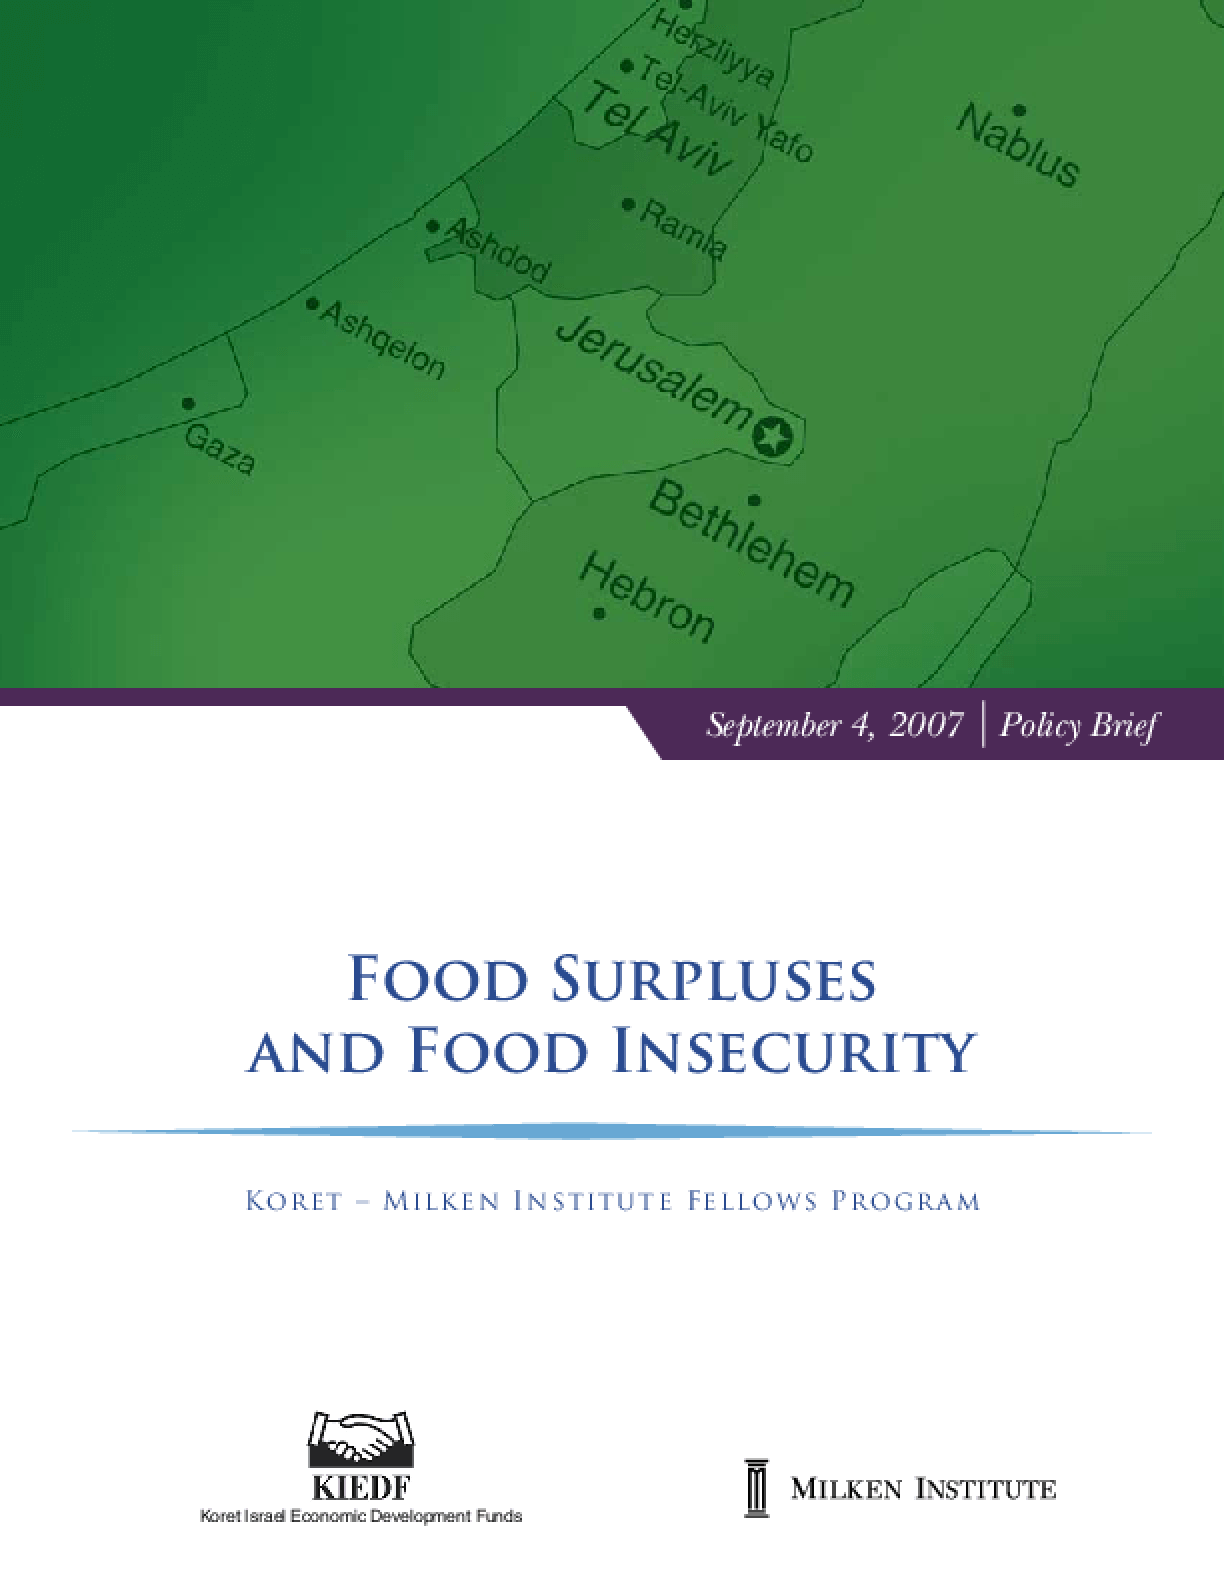 Food Surpluses and Food Insecurity